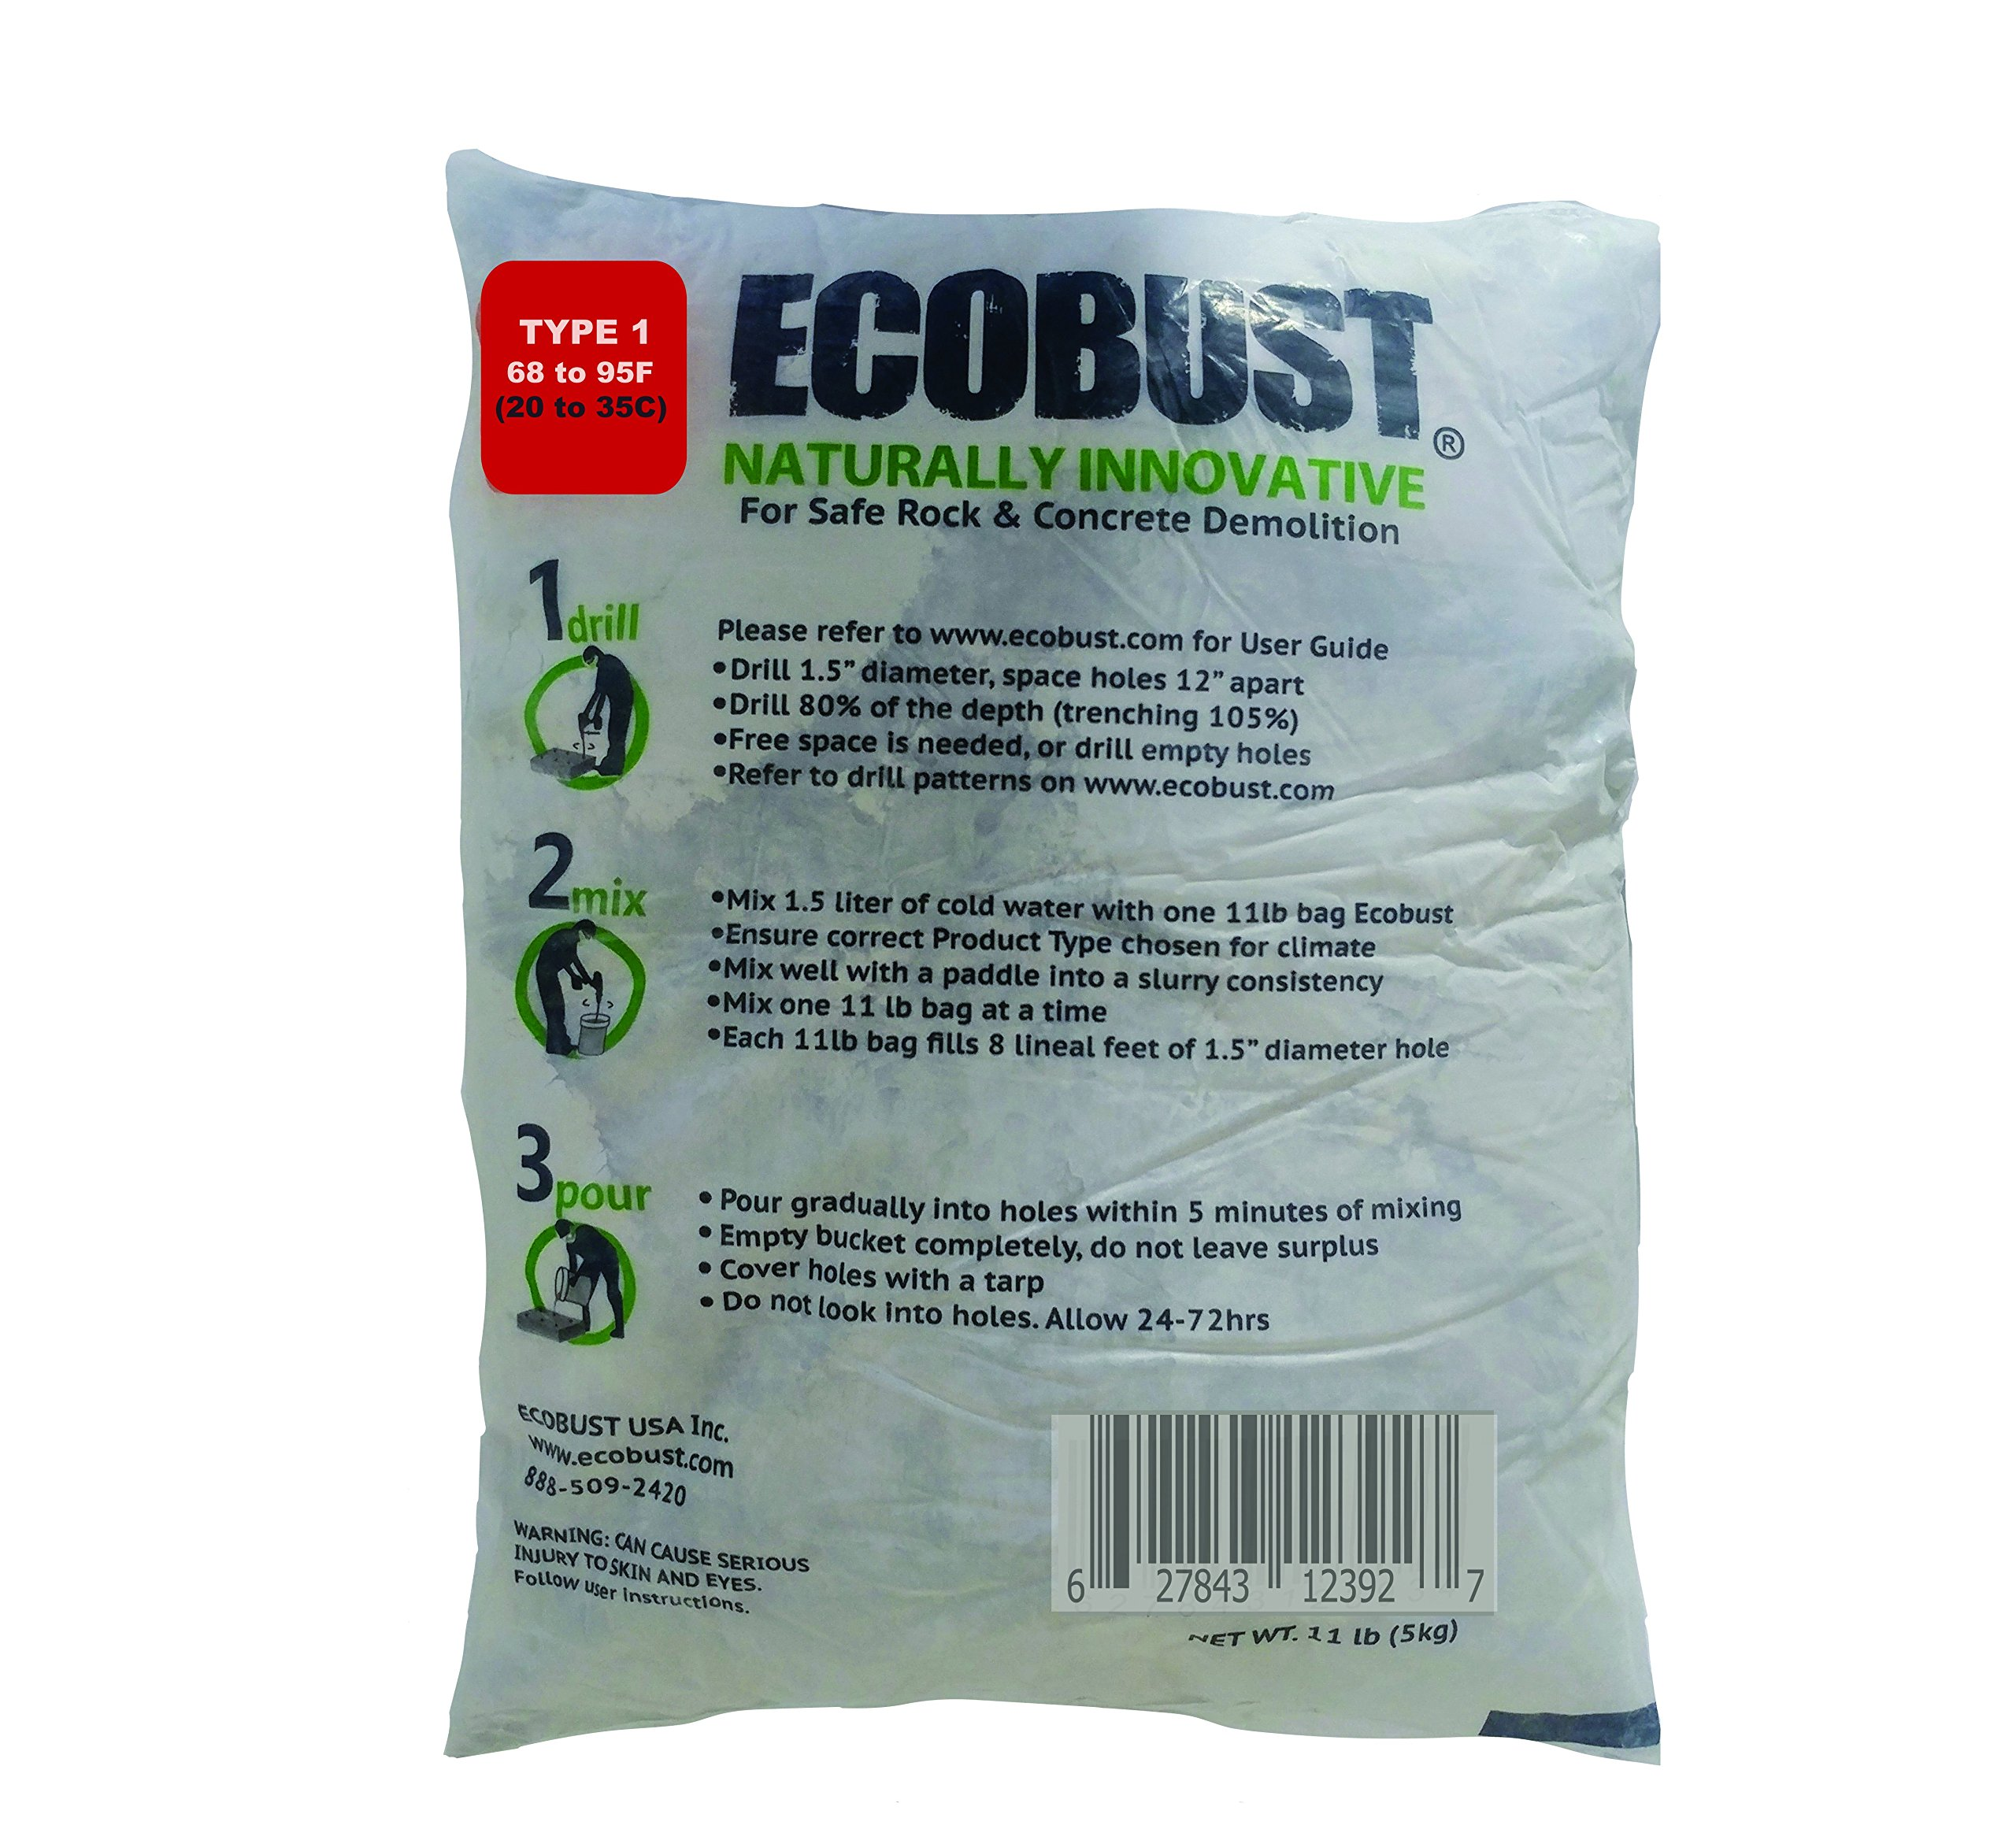 Ecobust USA Type 1 (68F to 95F) Concrete Cutting and Rock Breaking Non-Combustive Demolition Agent, 11lb (Packaging may vary) by Ecobust USA